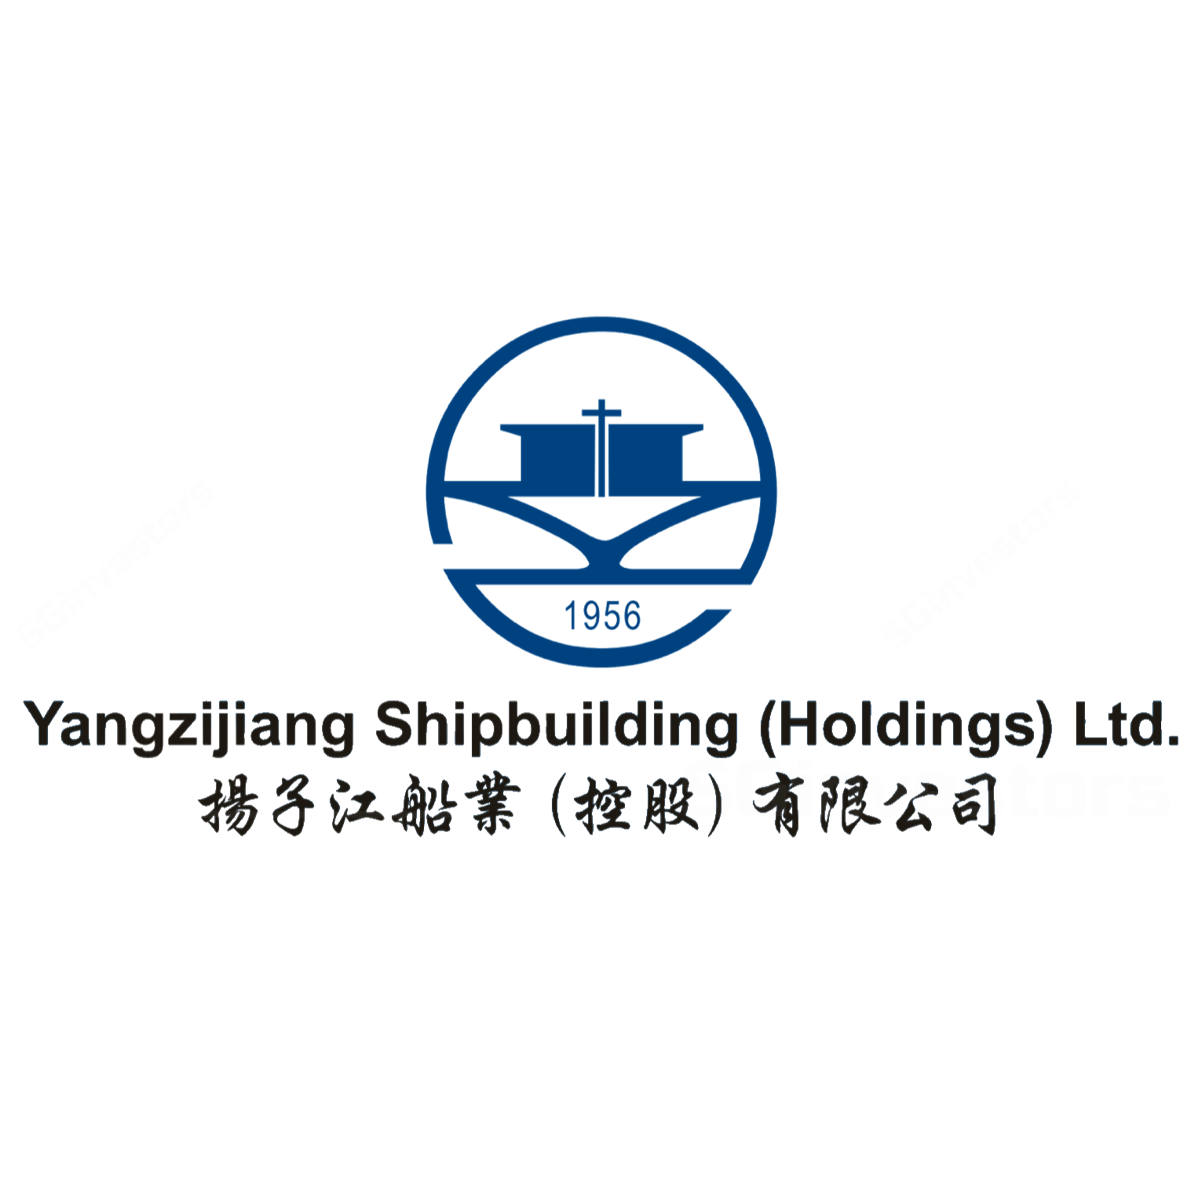 Yangzijiang Shipbuilding - DBS Vickers 2017-11-13: Robust Contract Flow